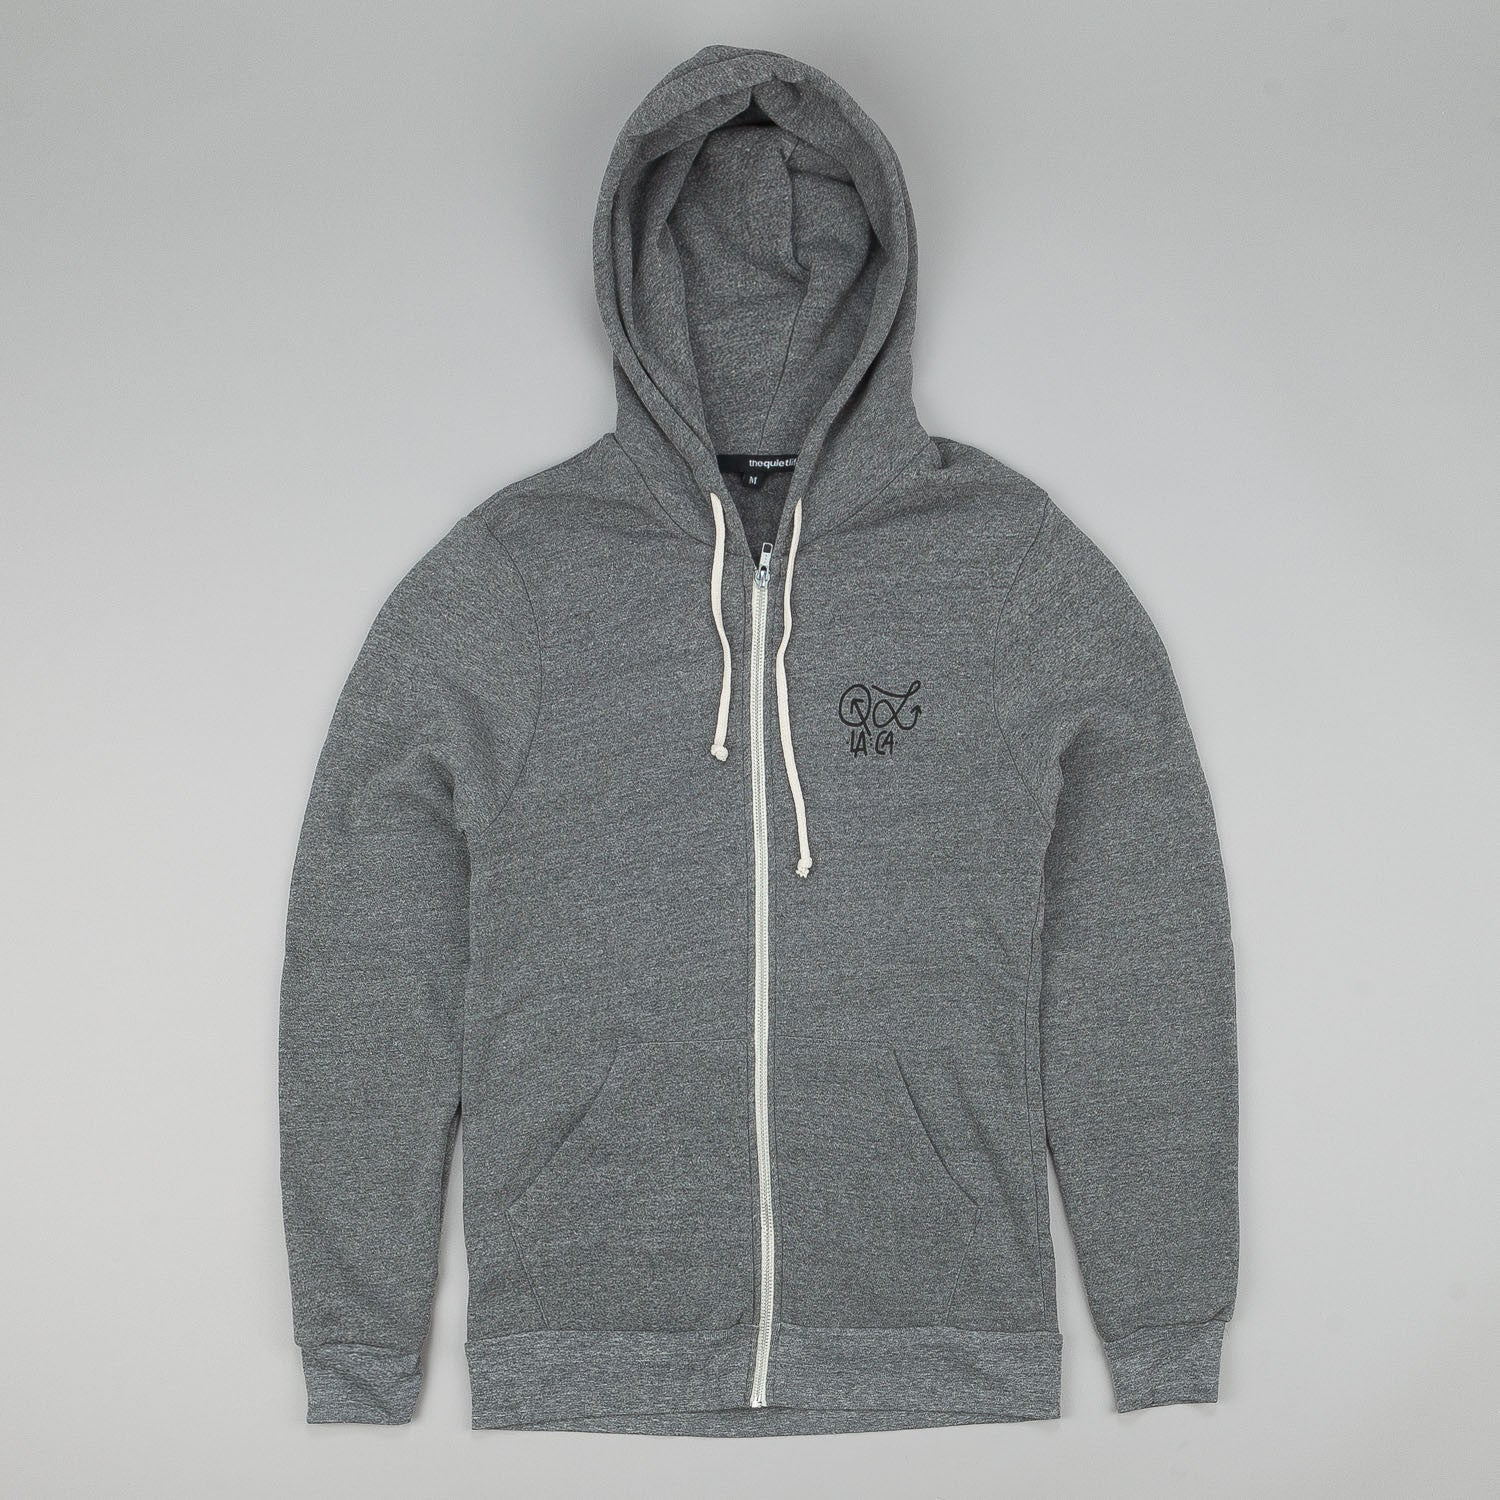 The Quiet Life Quiet Hudson Zip Up Hooded Sweatshirt